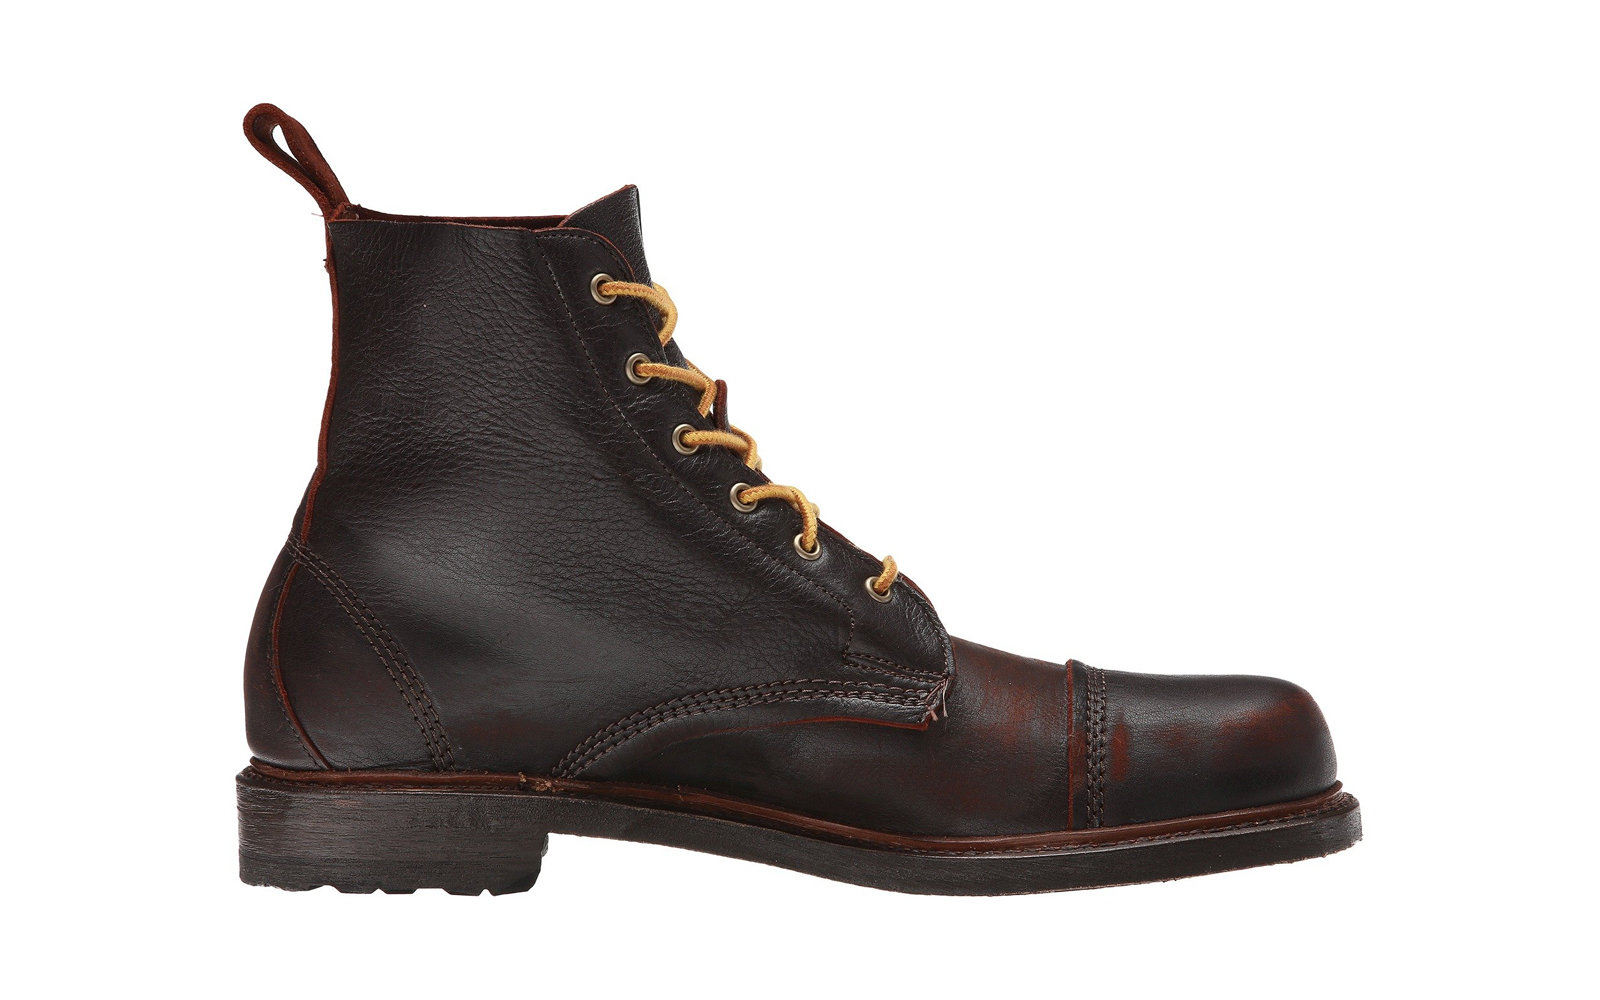 The Best Men's Waterproof Boots for Every Occasion | Travel